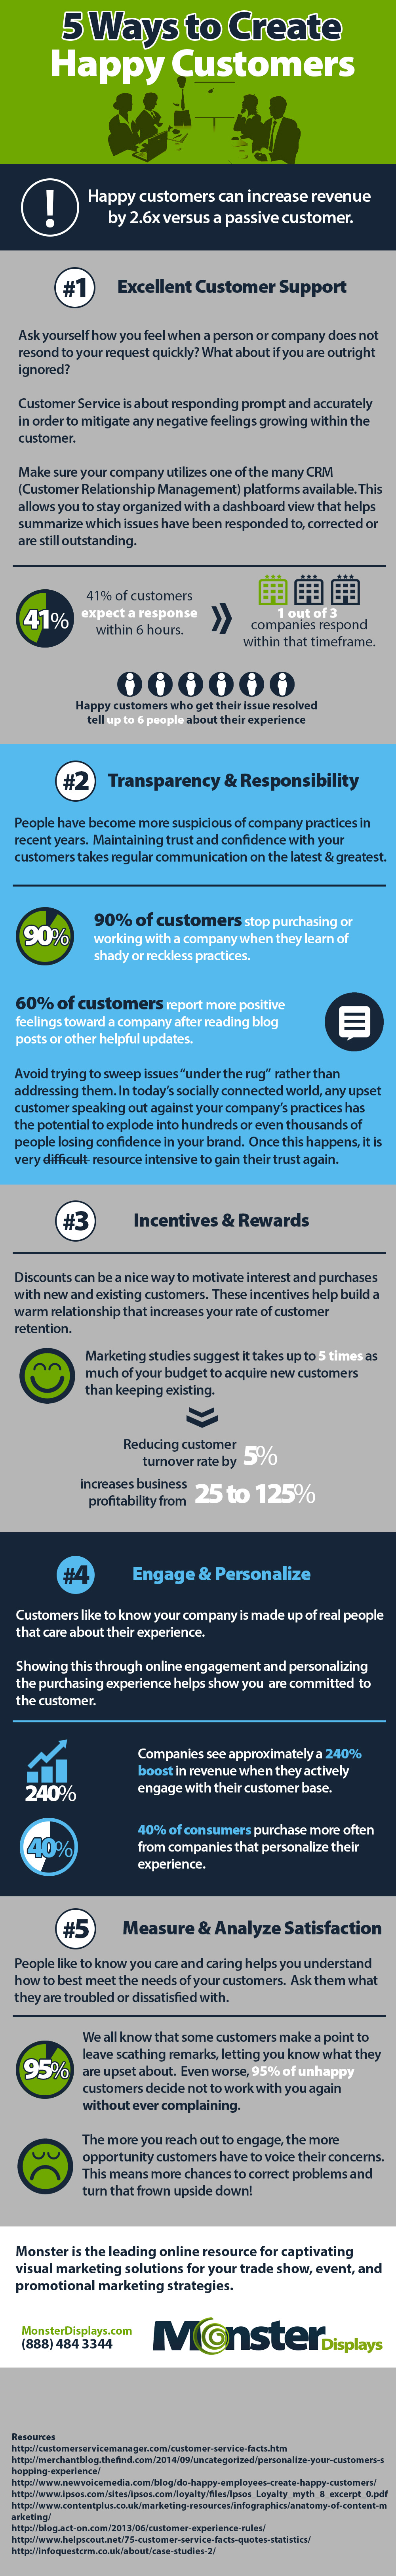 Infographic-Create-Happy-Customers